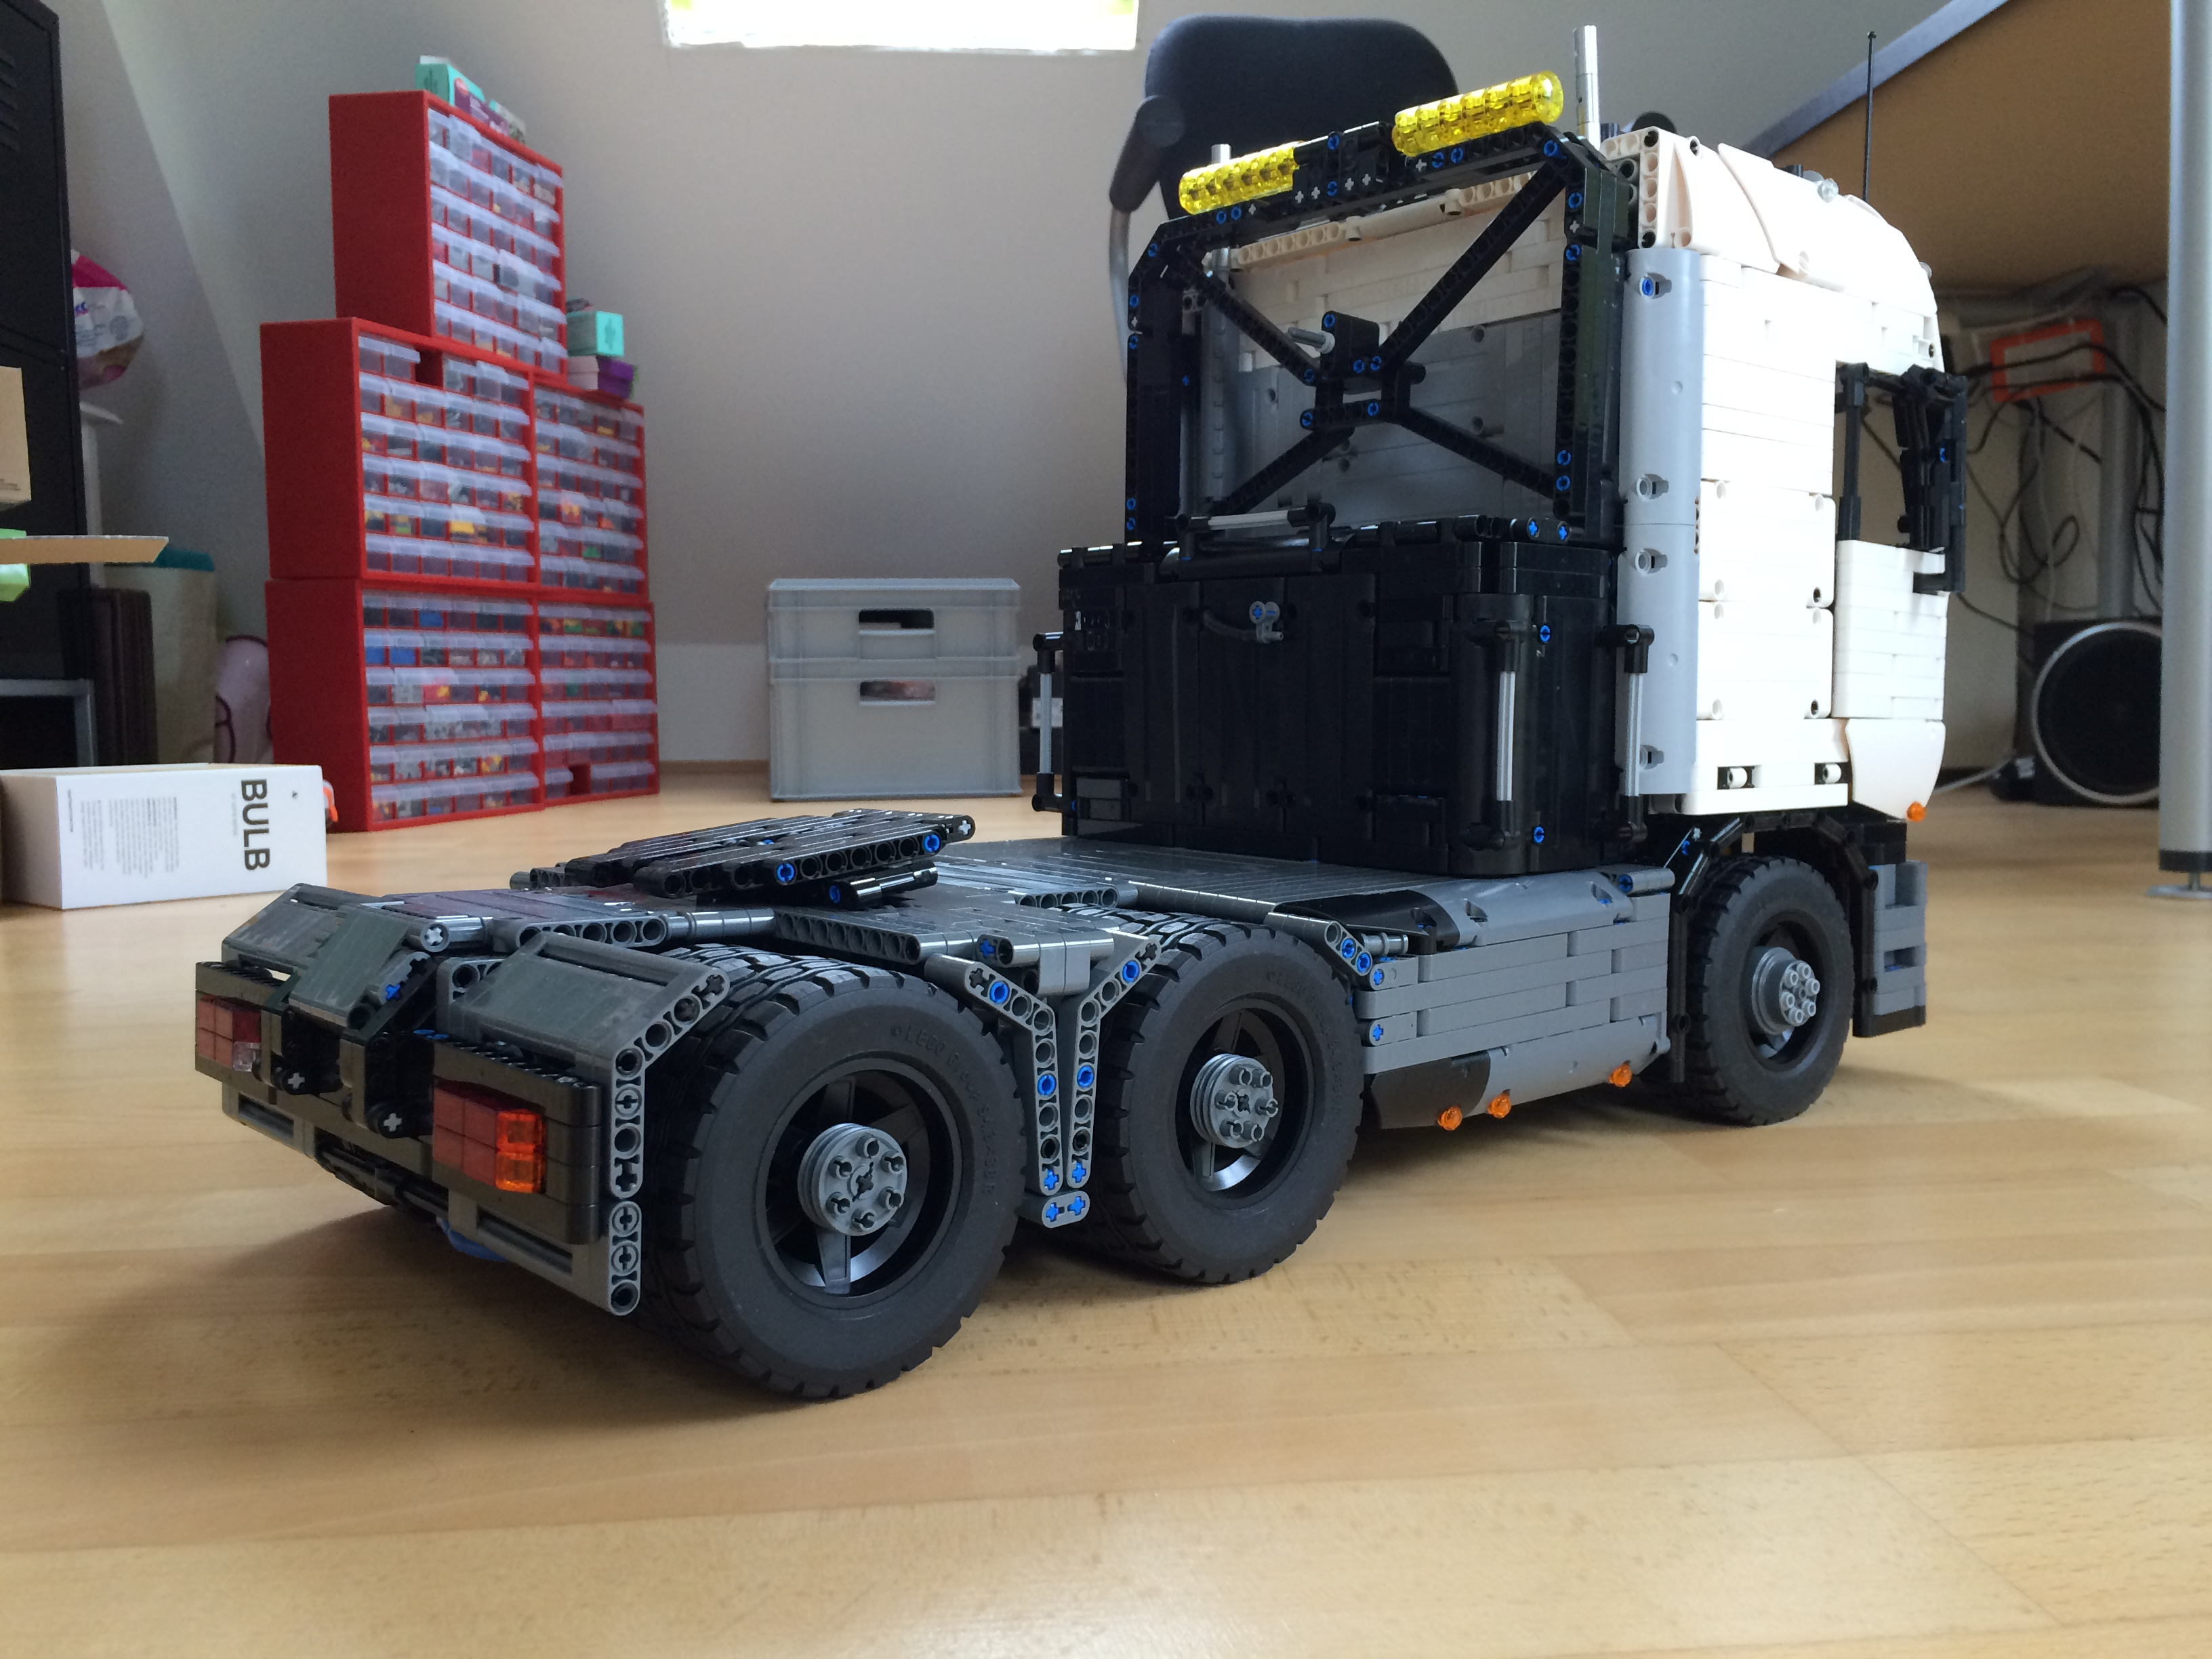 Lego Moc Tractor Truck By Lucioswitch81 Rebrickable Build With Lego